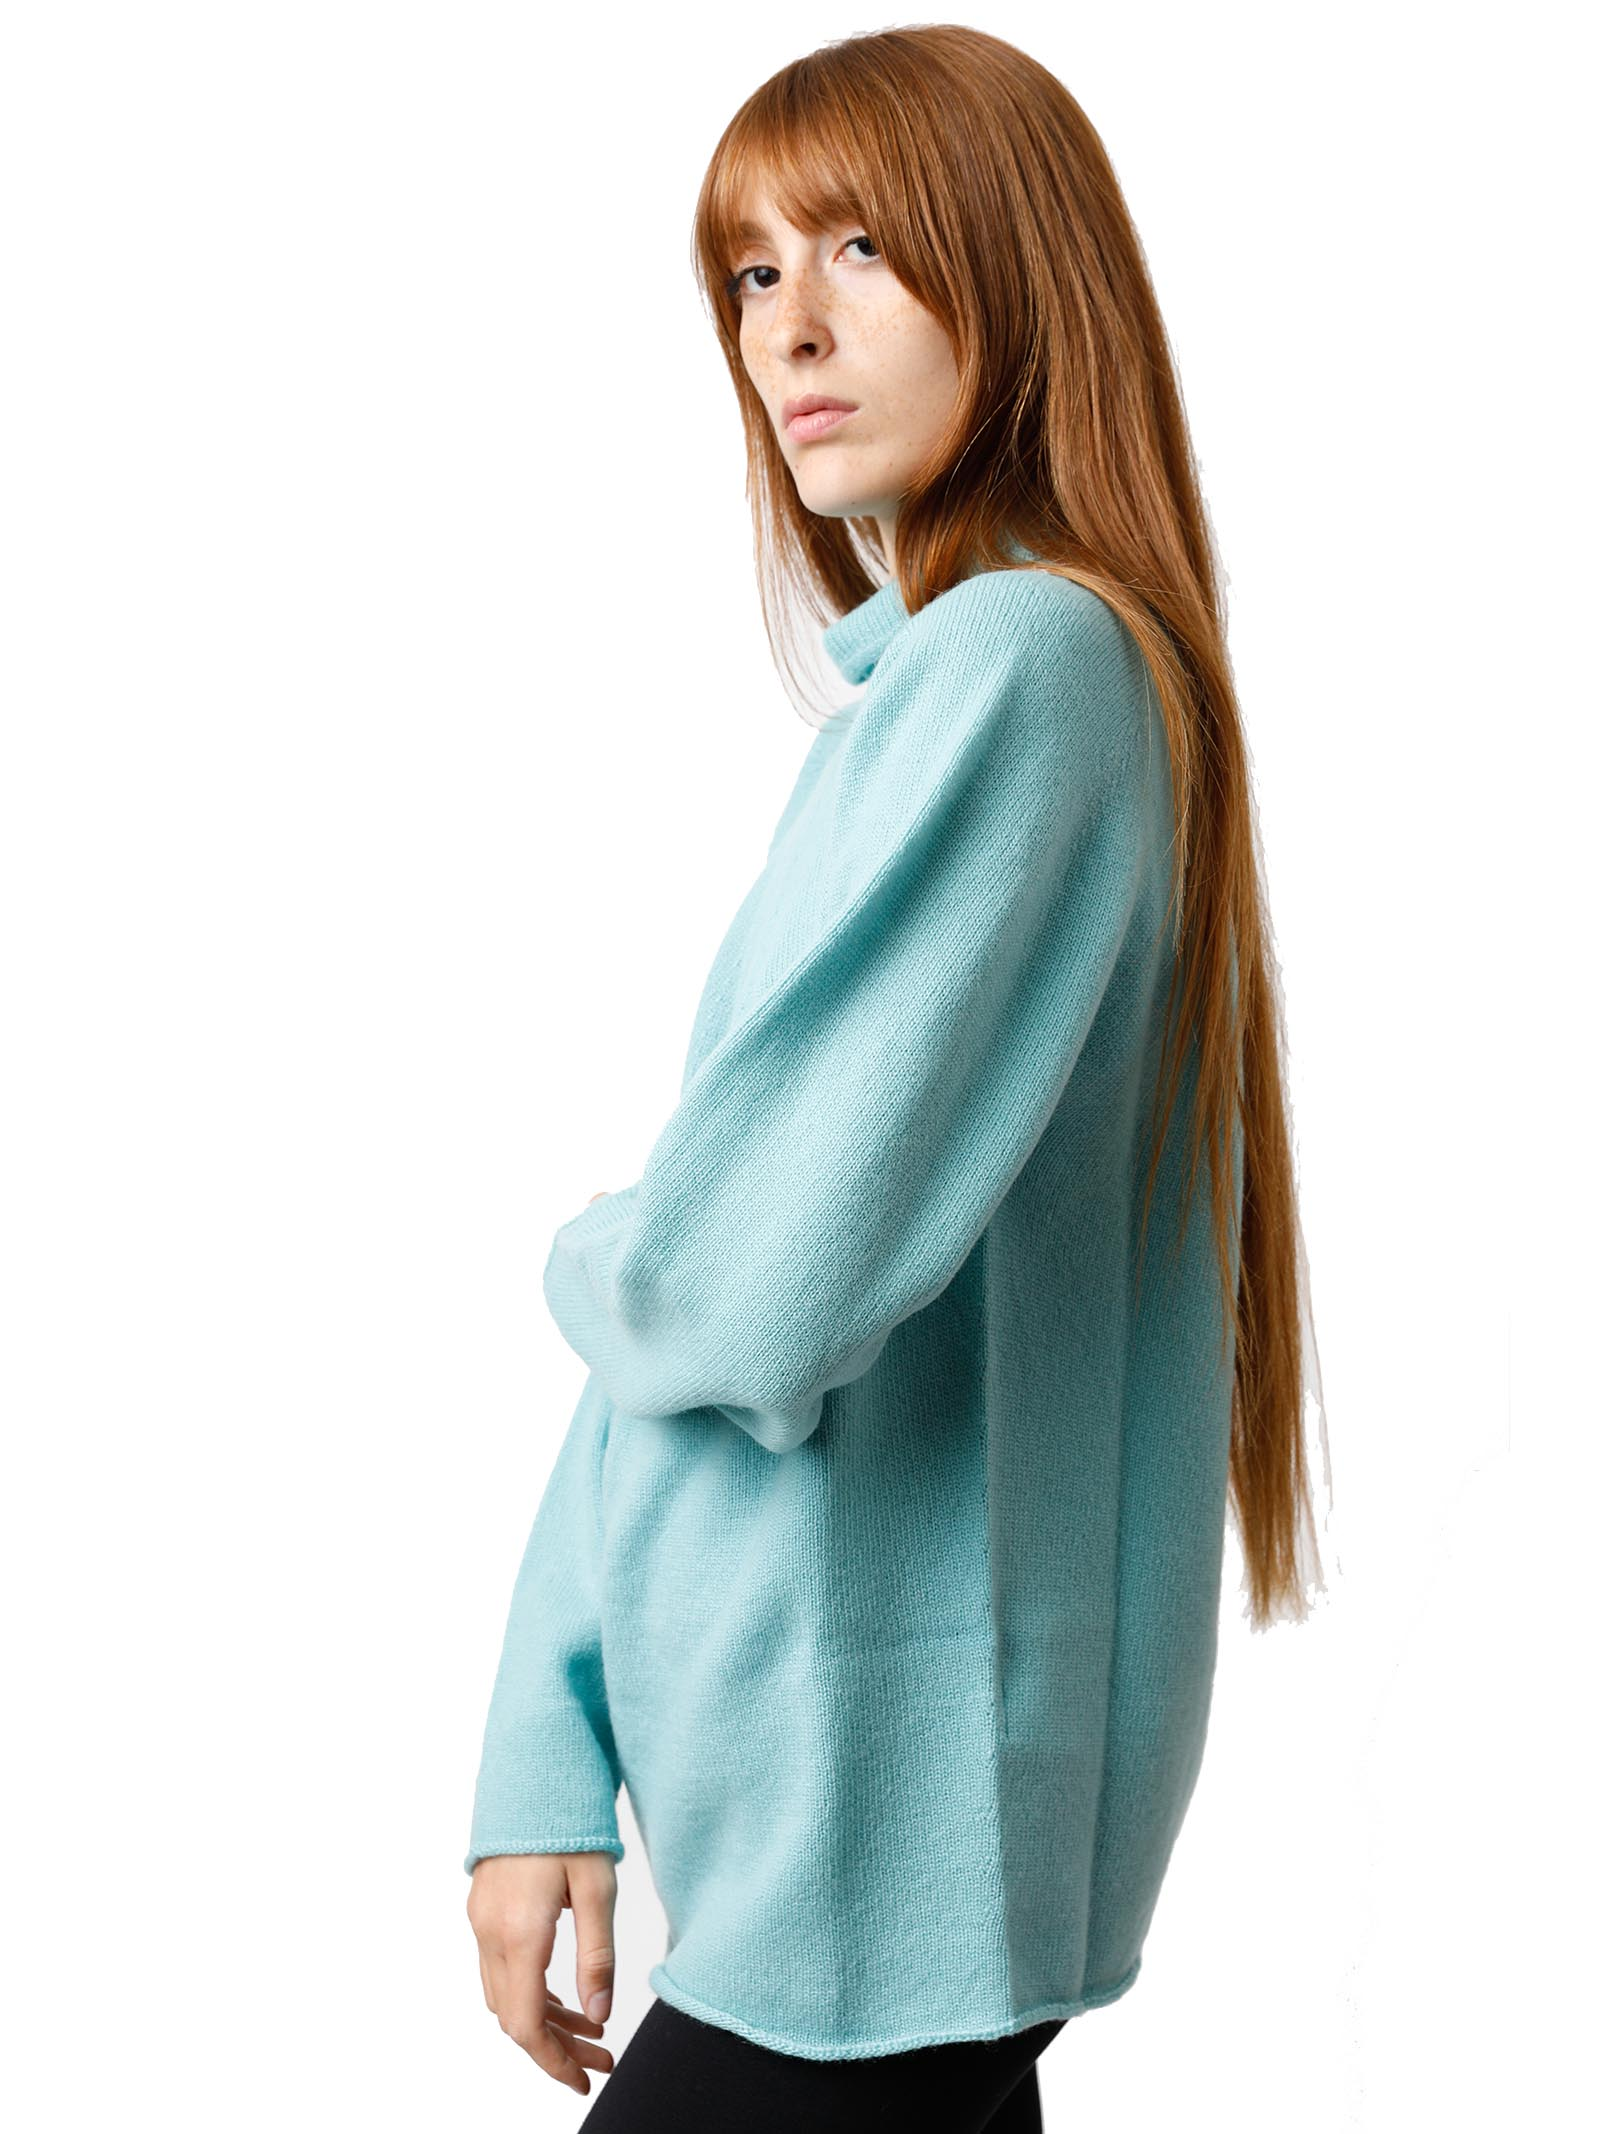 Women's Clothing Soft Cash Sweater in Aqua Green Cashmere with High Neck and Flared Bottom Maliparmi | Knitwear | JQ48797045760012